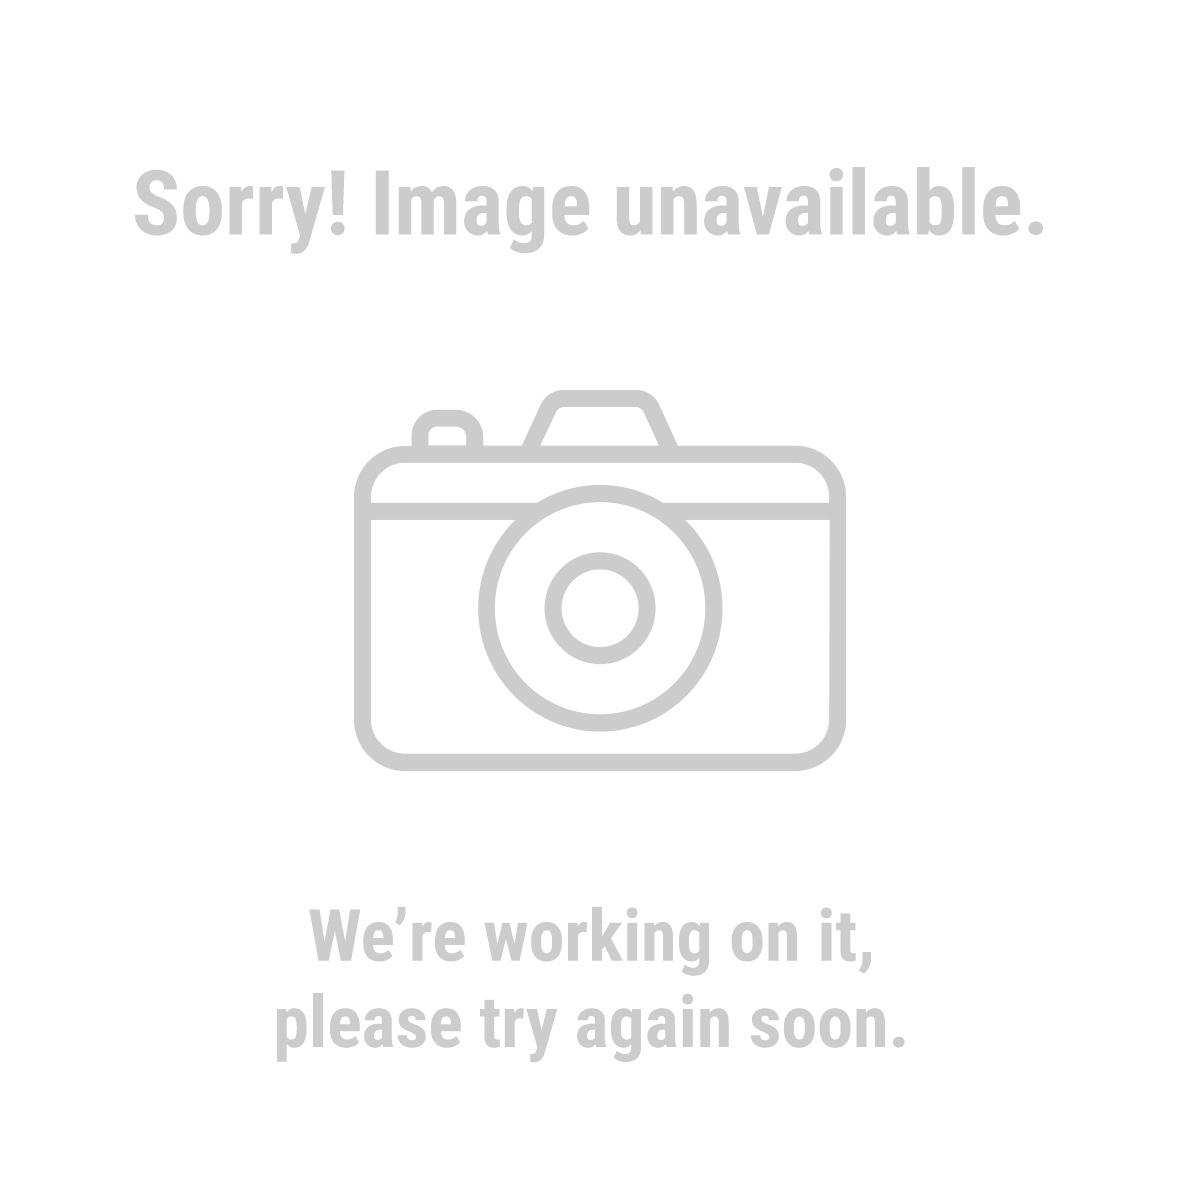 Warrior 62394 Sanding Cone Set 52 Pc